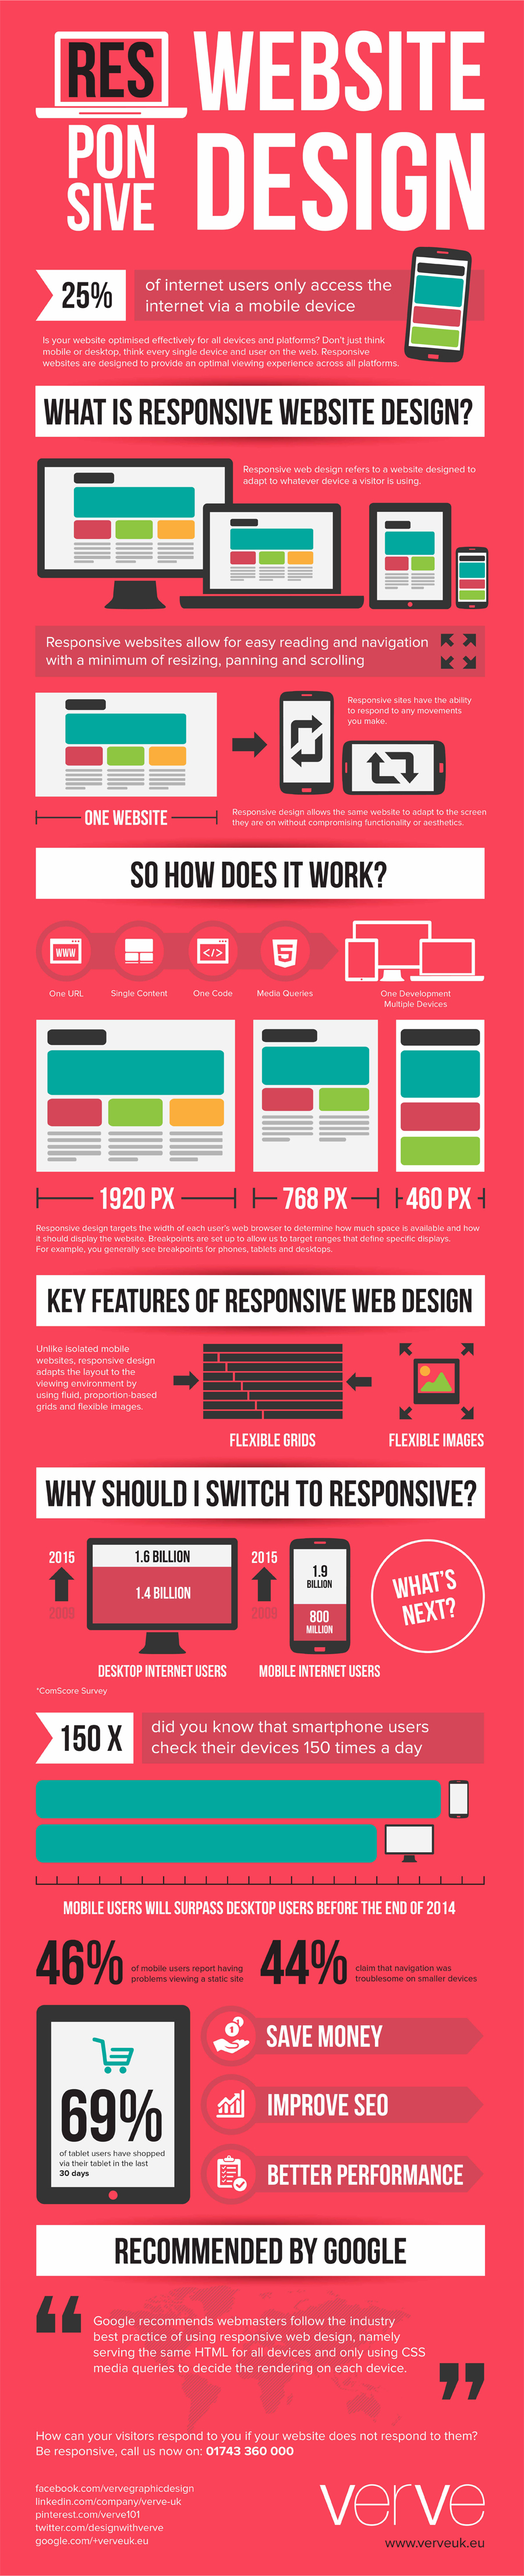 responsive website ontwerp infographic